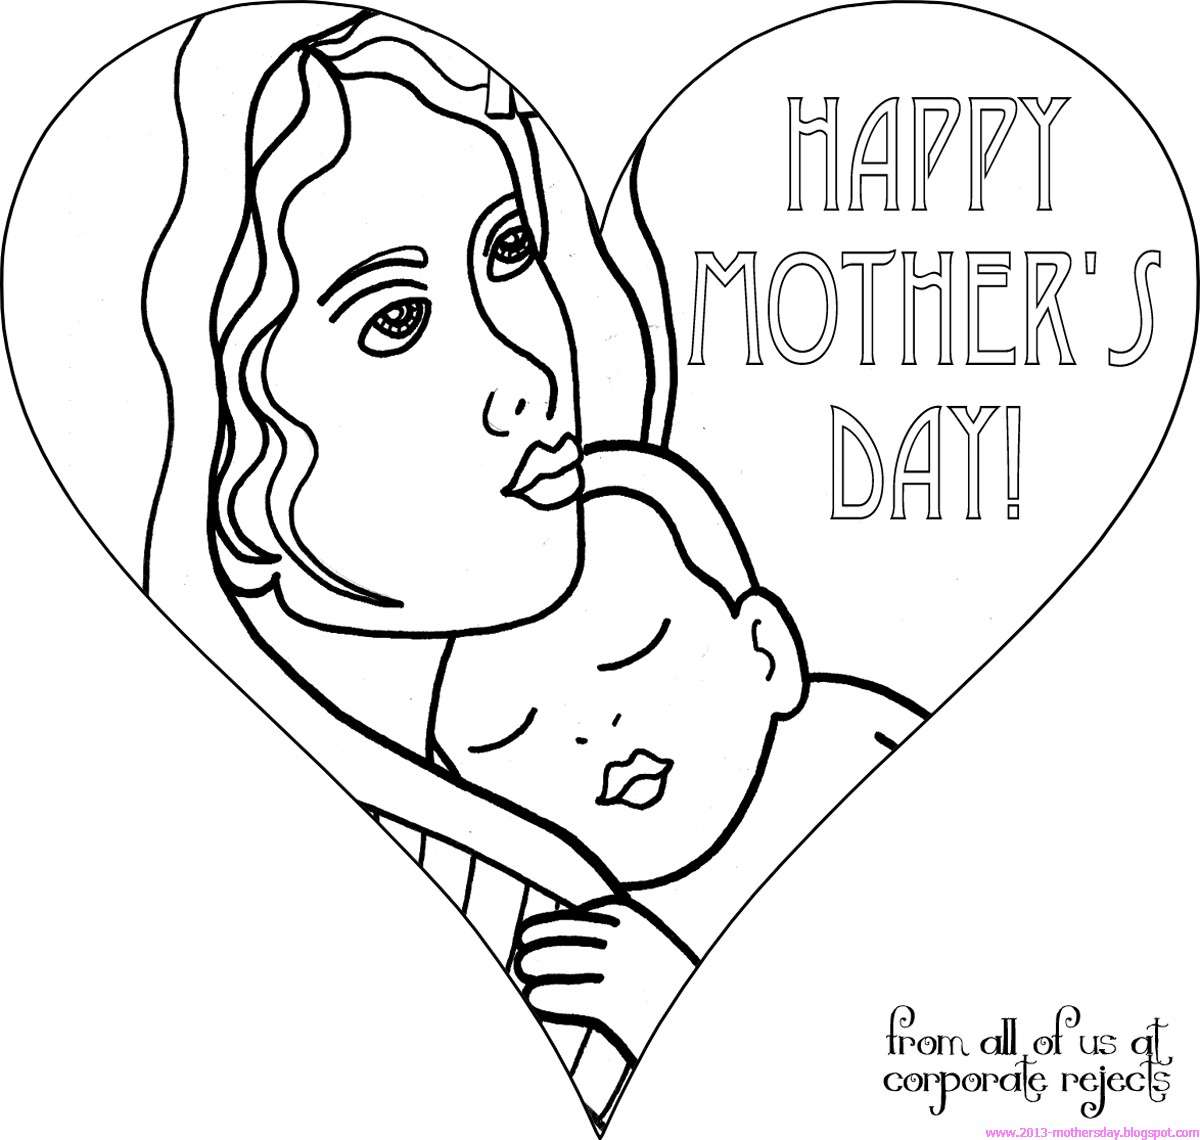 mothers day coloring pages for kids - Free Coloring Pages Printable Coloring Pages for Kids